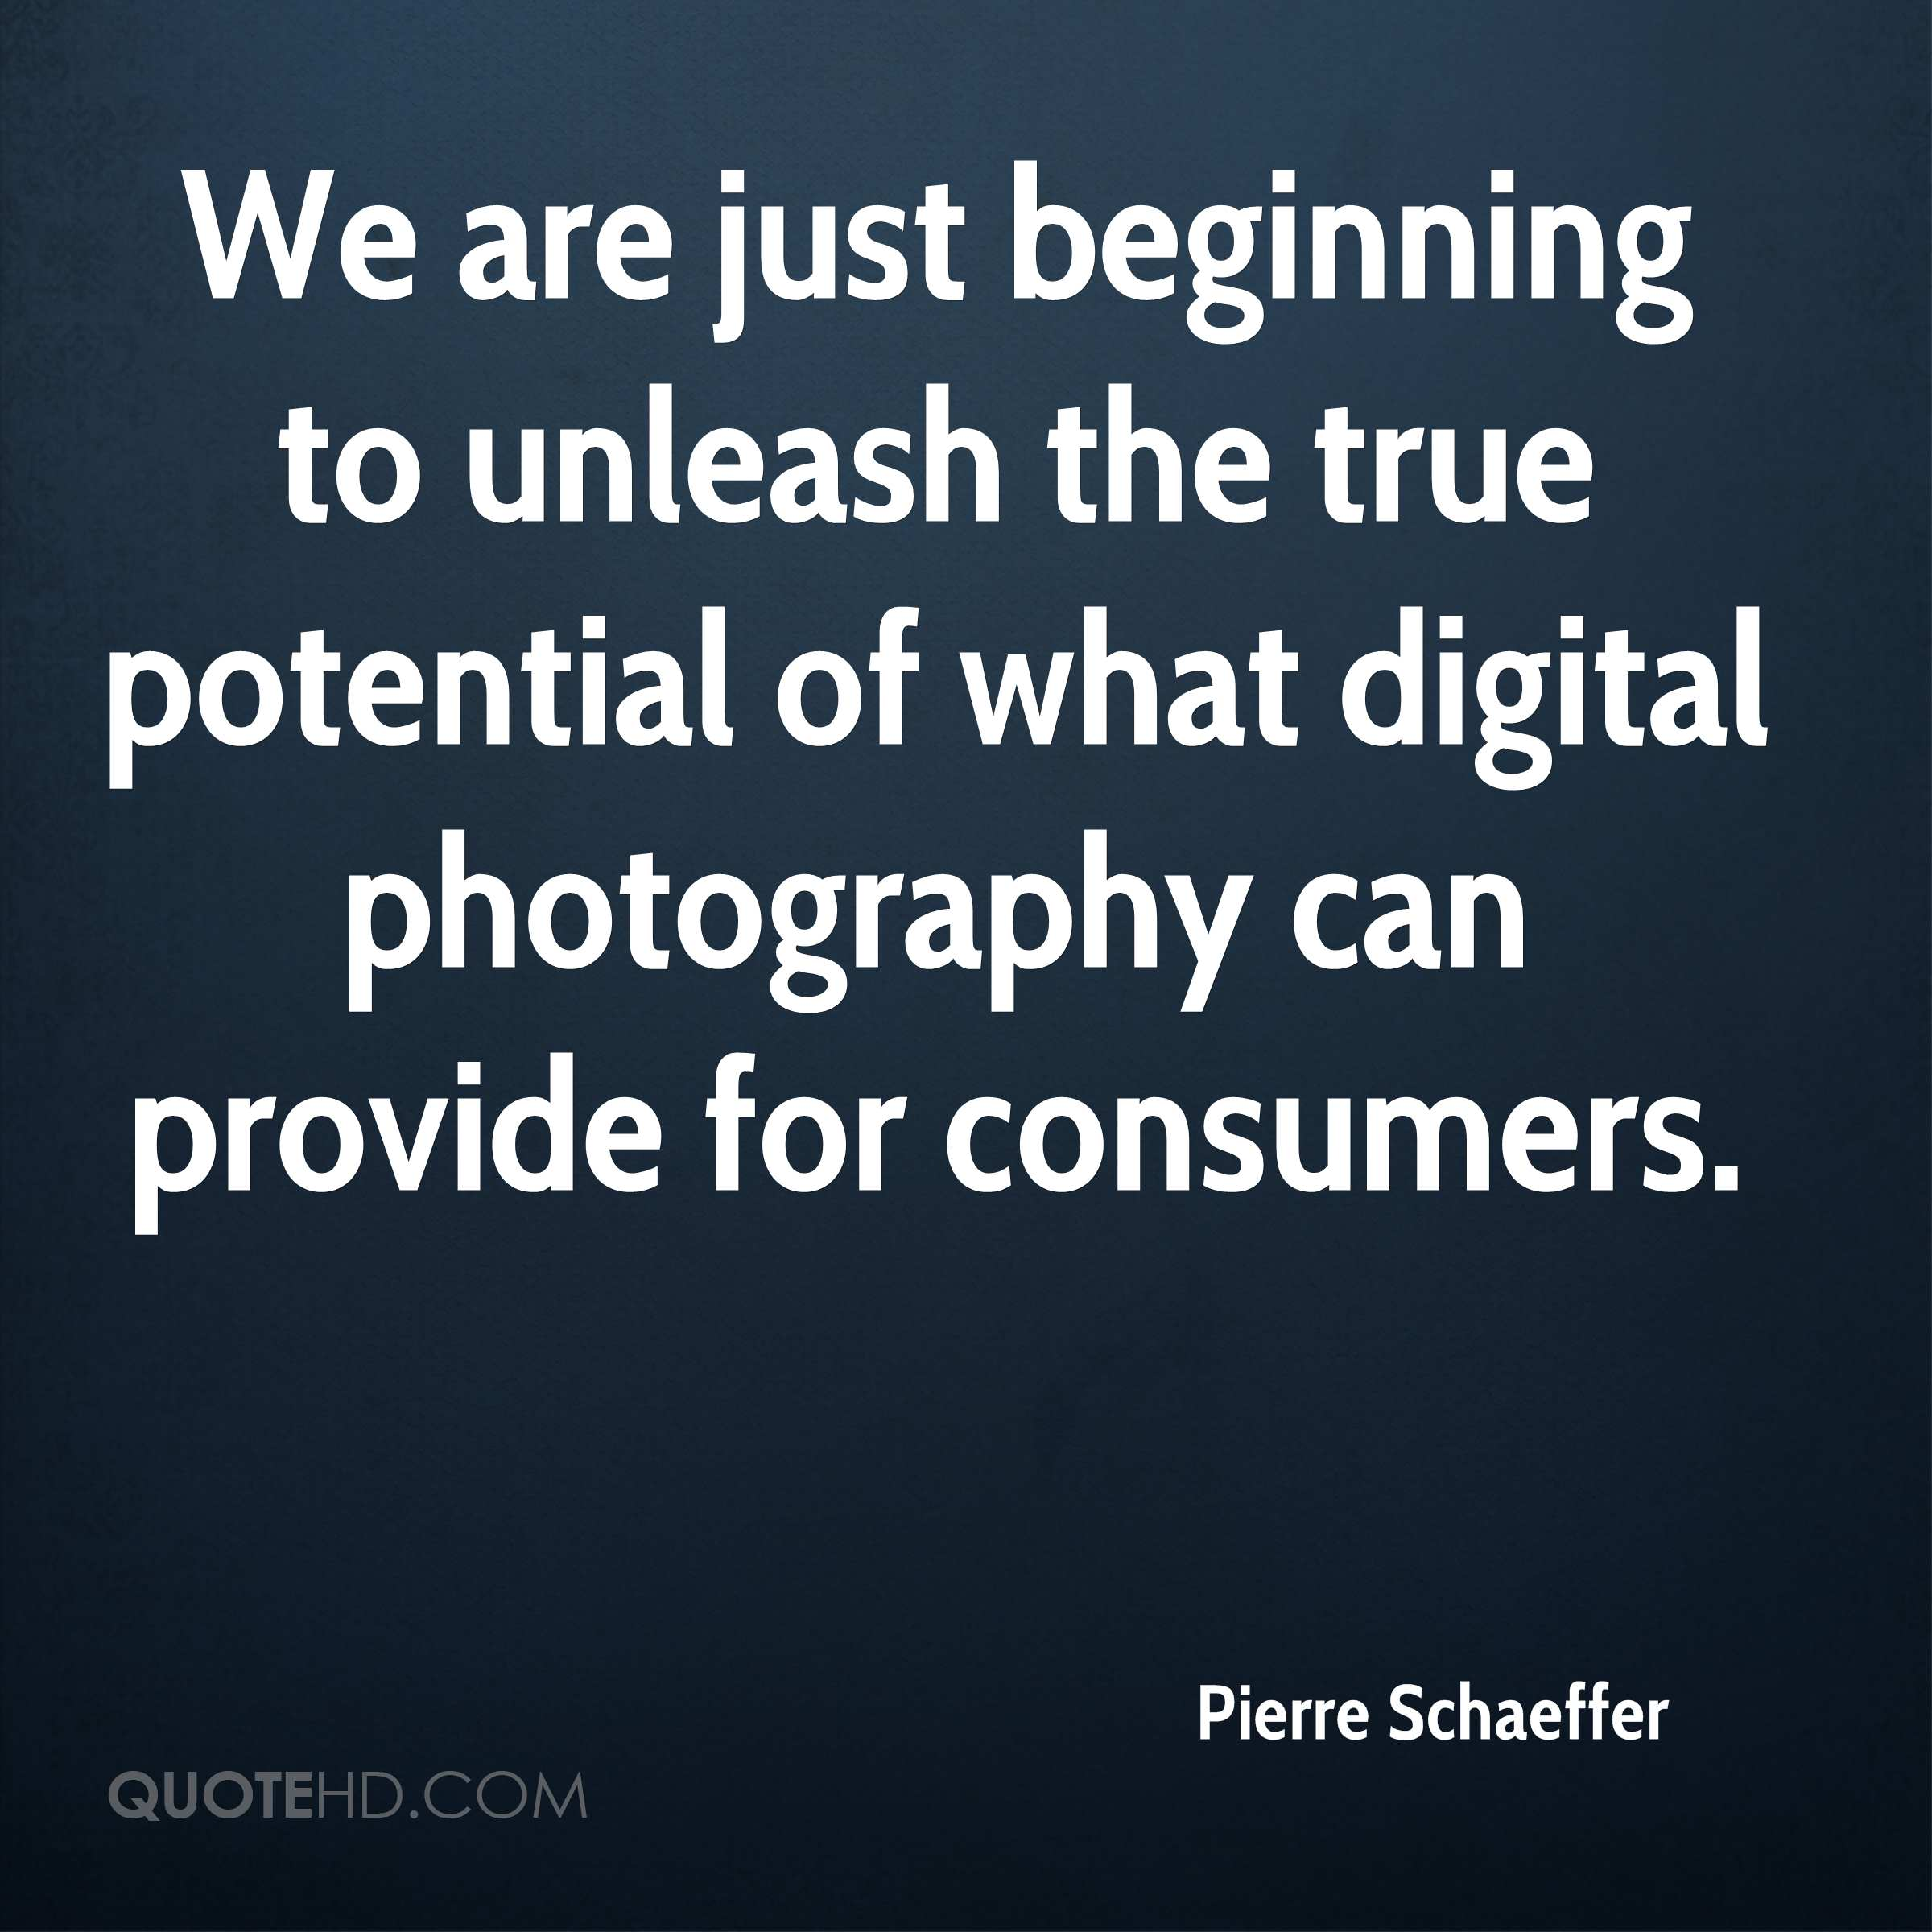 We are just beginning to unleash the true potential of what digital photography can provide for consumers.